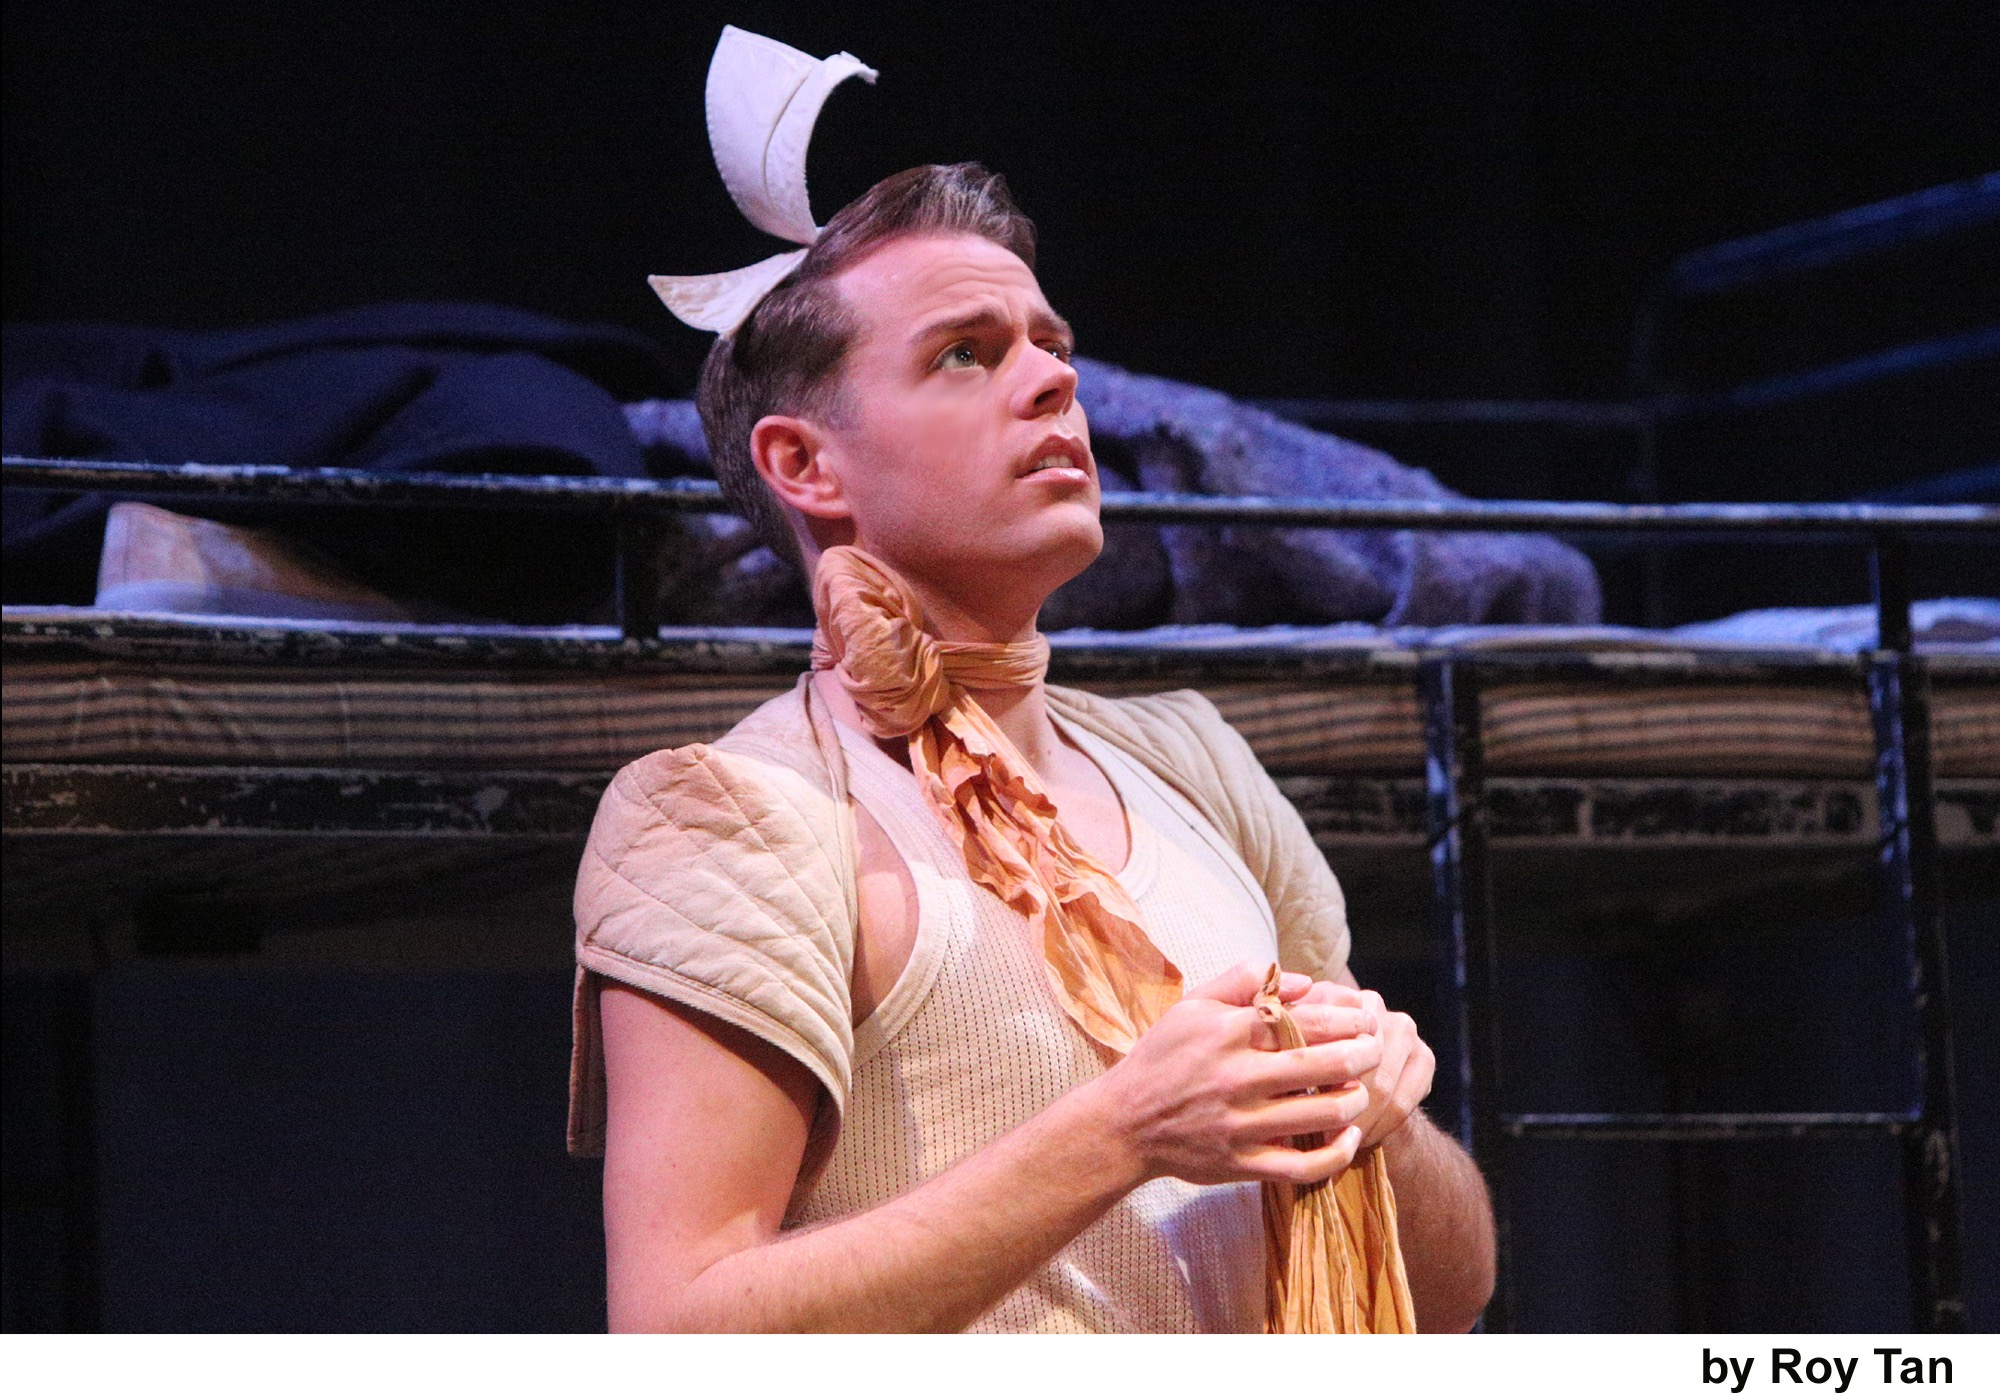 Hebe played by Richard Russell Edwards